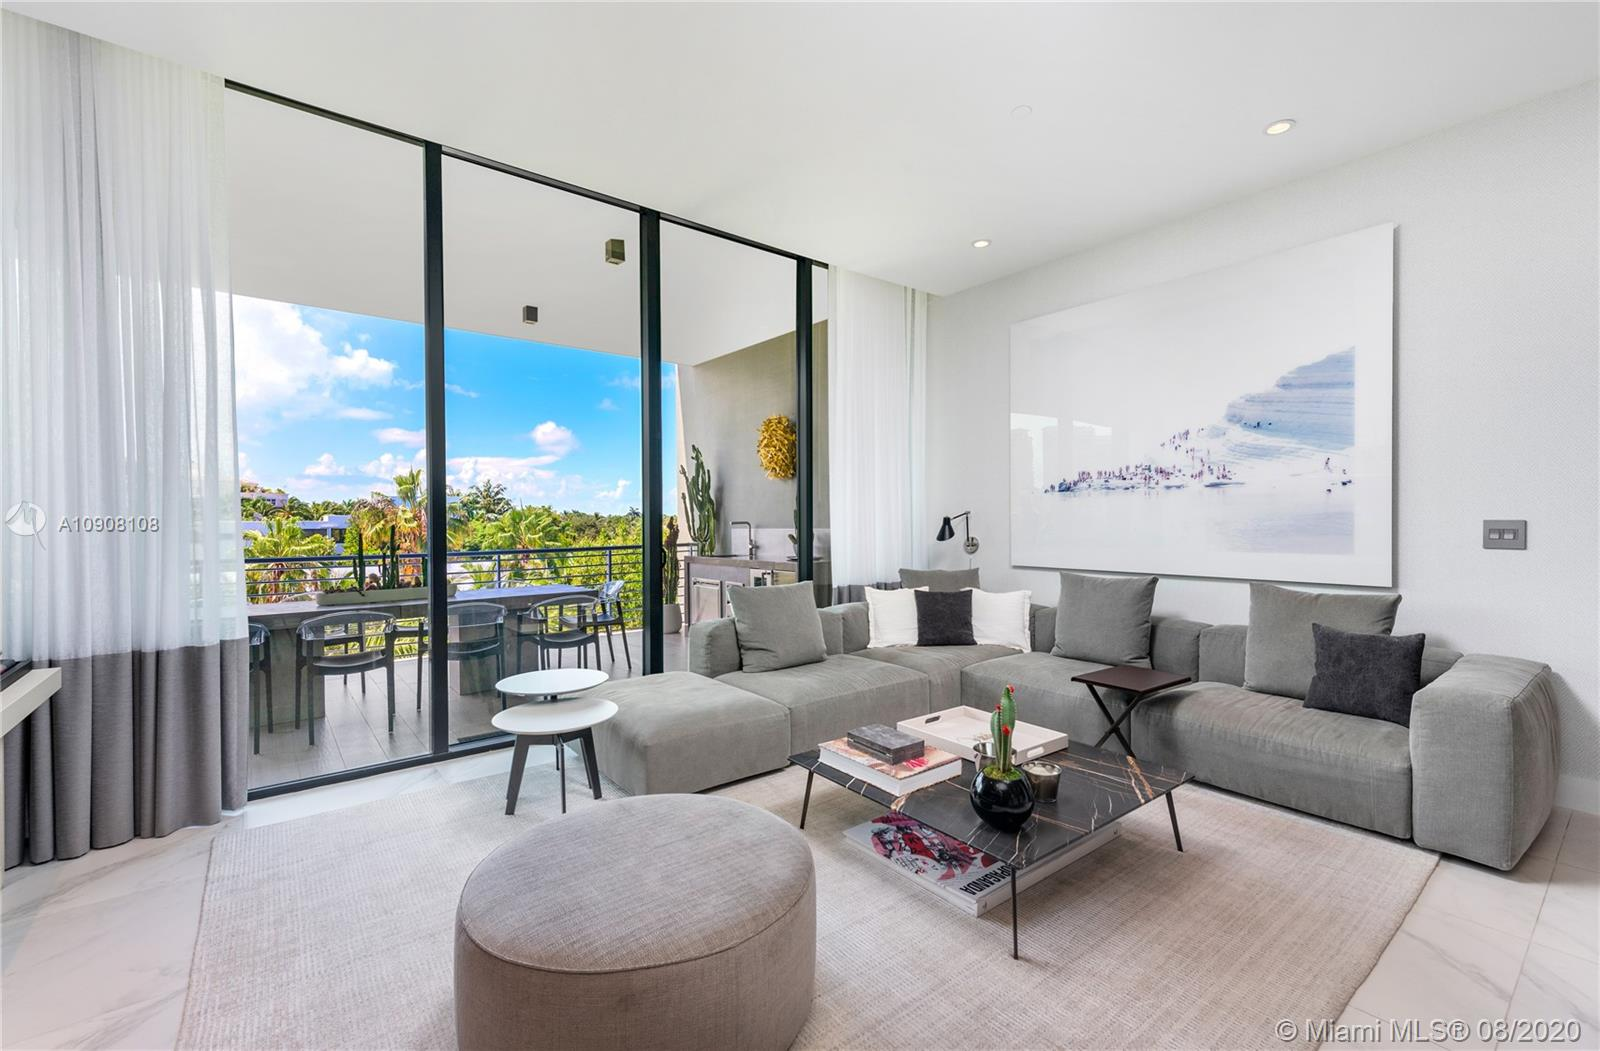 Amazing unit at the exclusive 101 Condominium in Key Biscayne. Building is centrally located and within minutes of restaurants, shop and beach. Gated and secured building. Roof top with barbecue Area, Pool and Gym. 